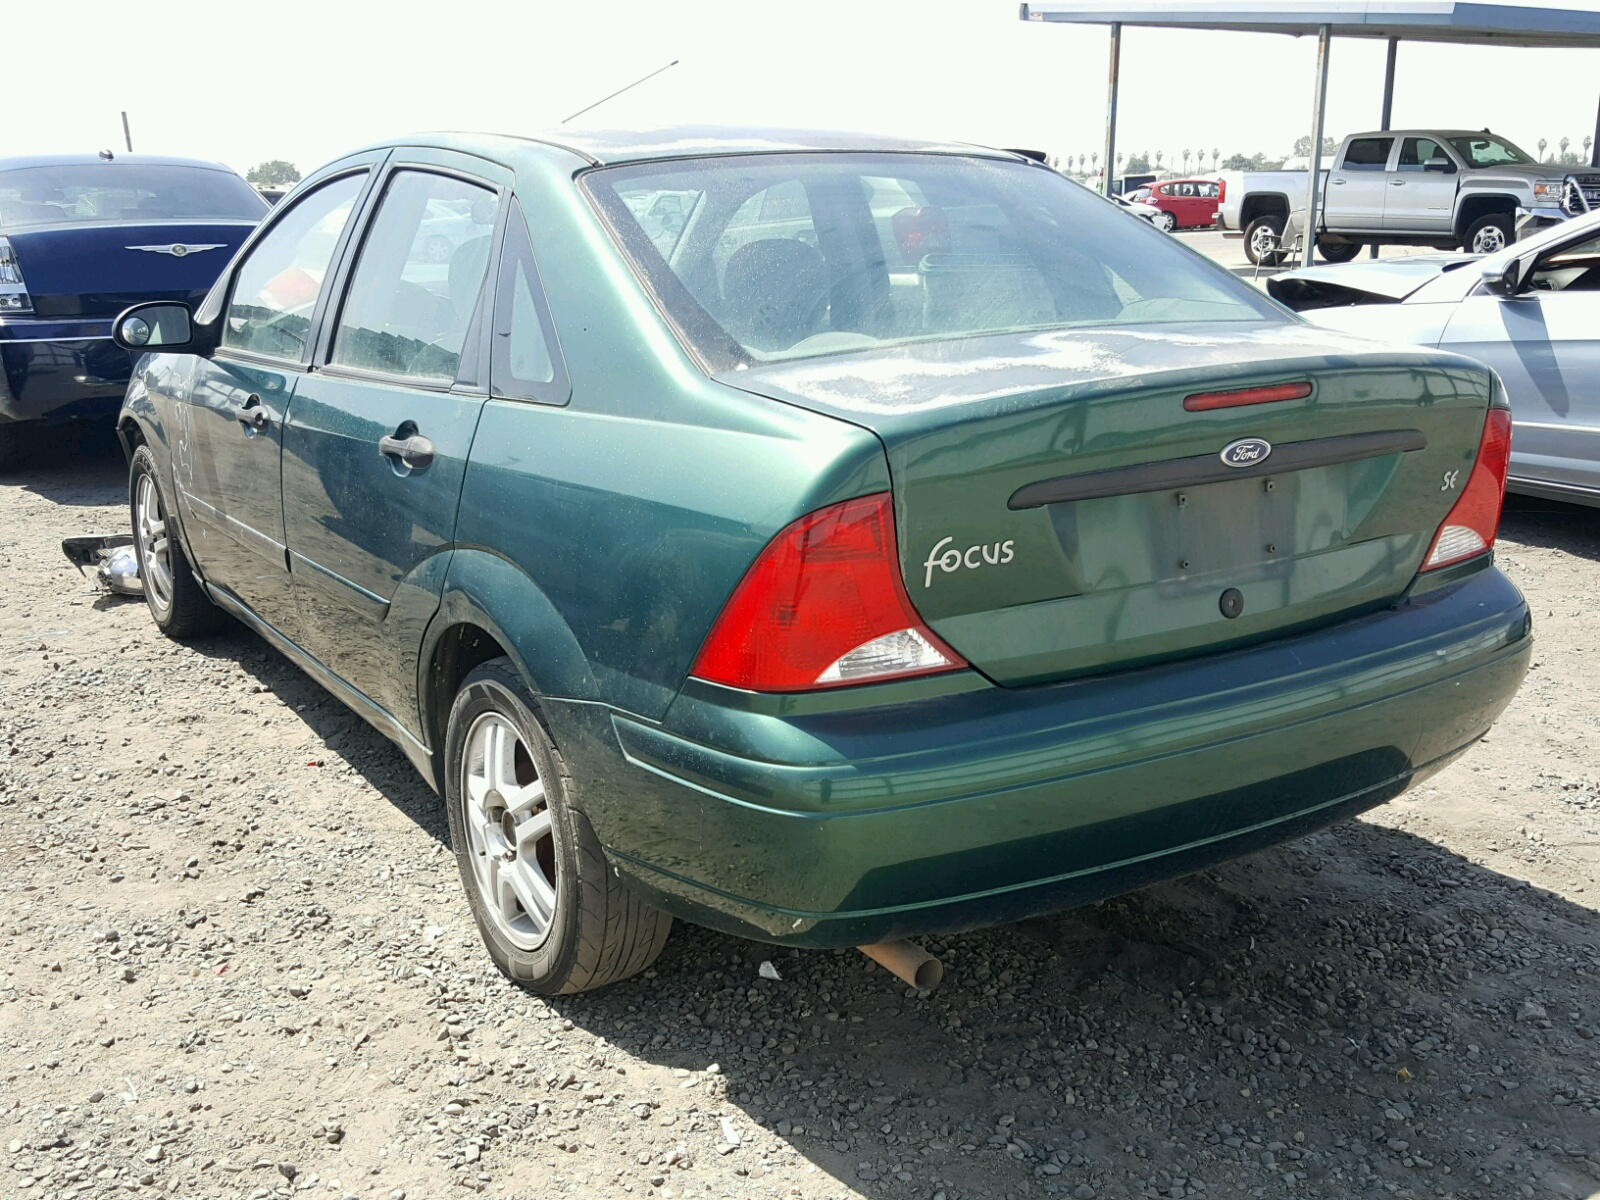 1fafp343xyw367210 2000 Green Ford Focus Se On Sale In Ca Fresno Sedan 20l Angle View